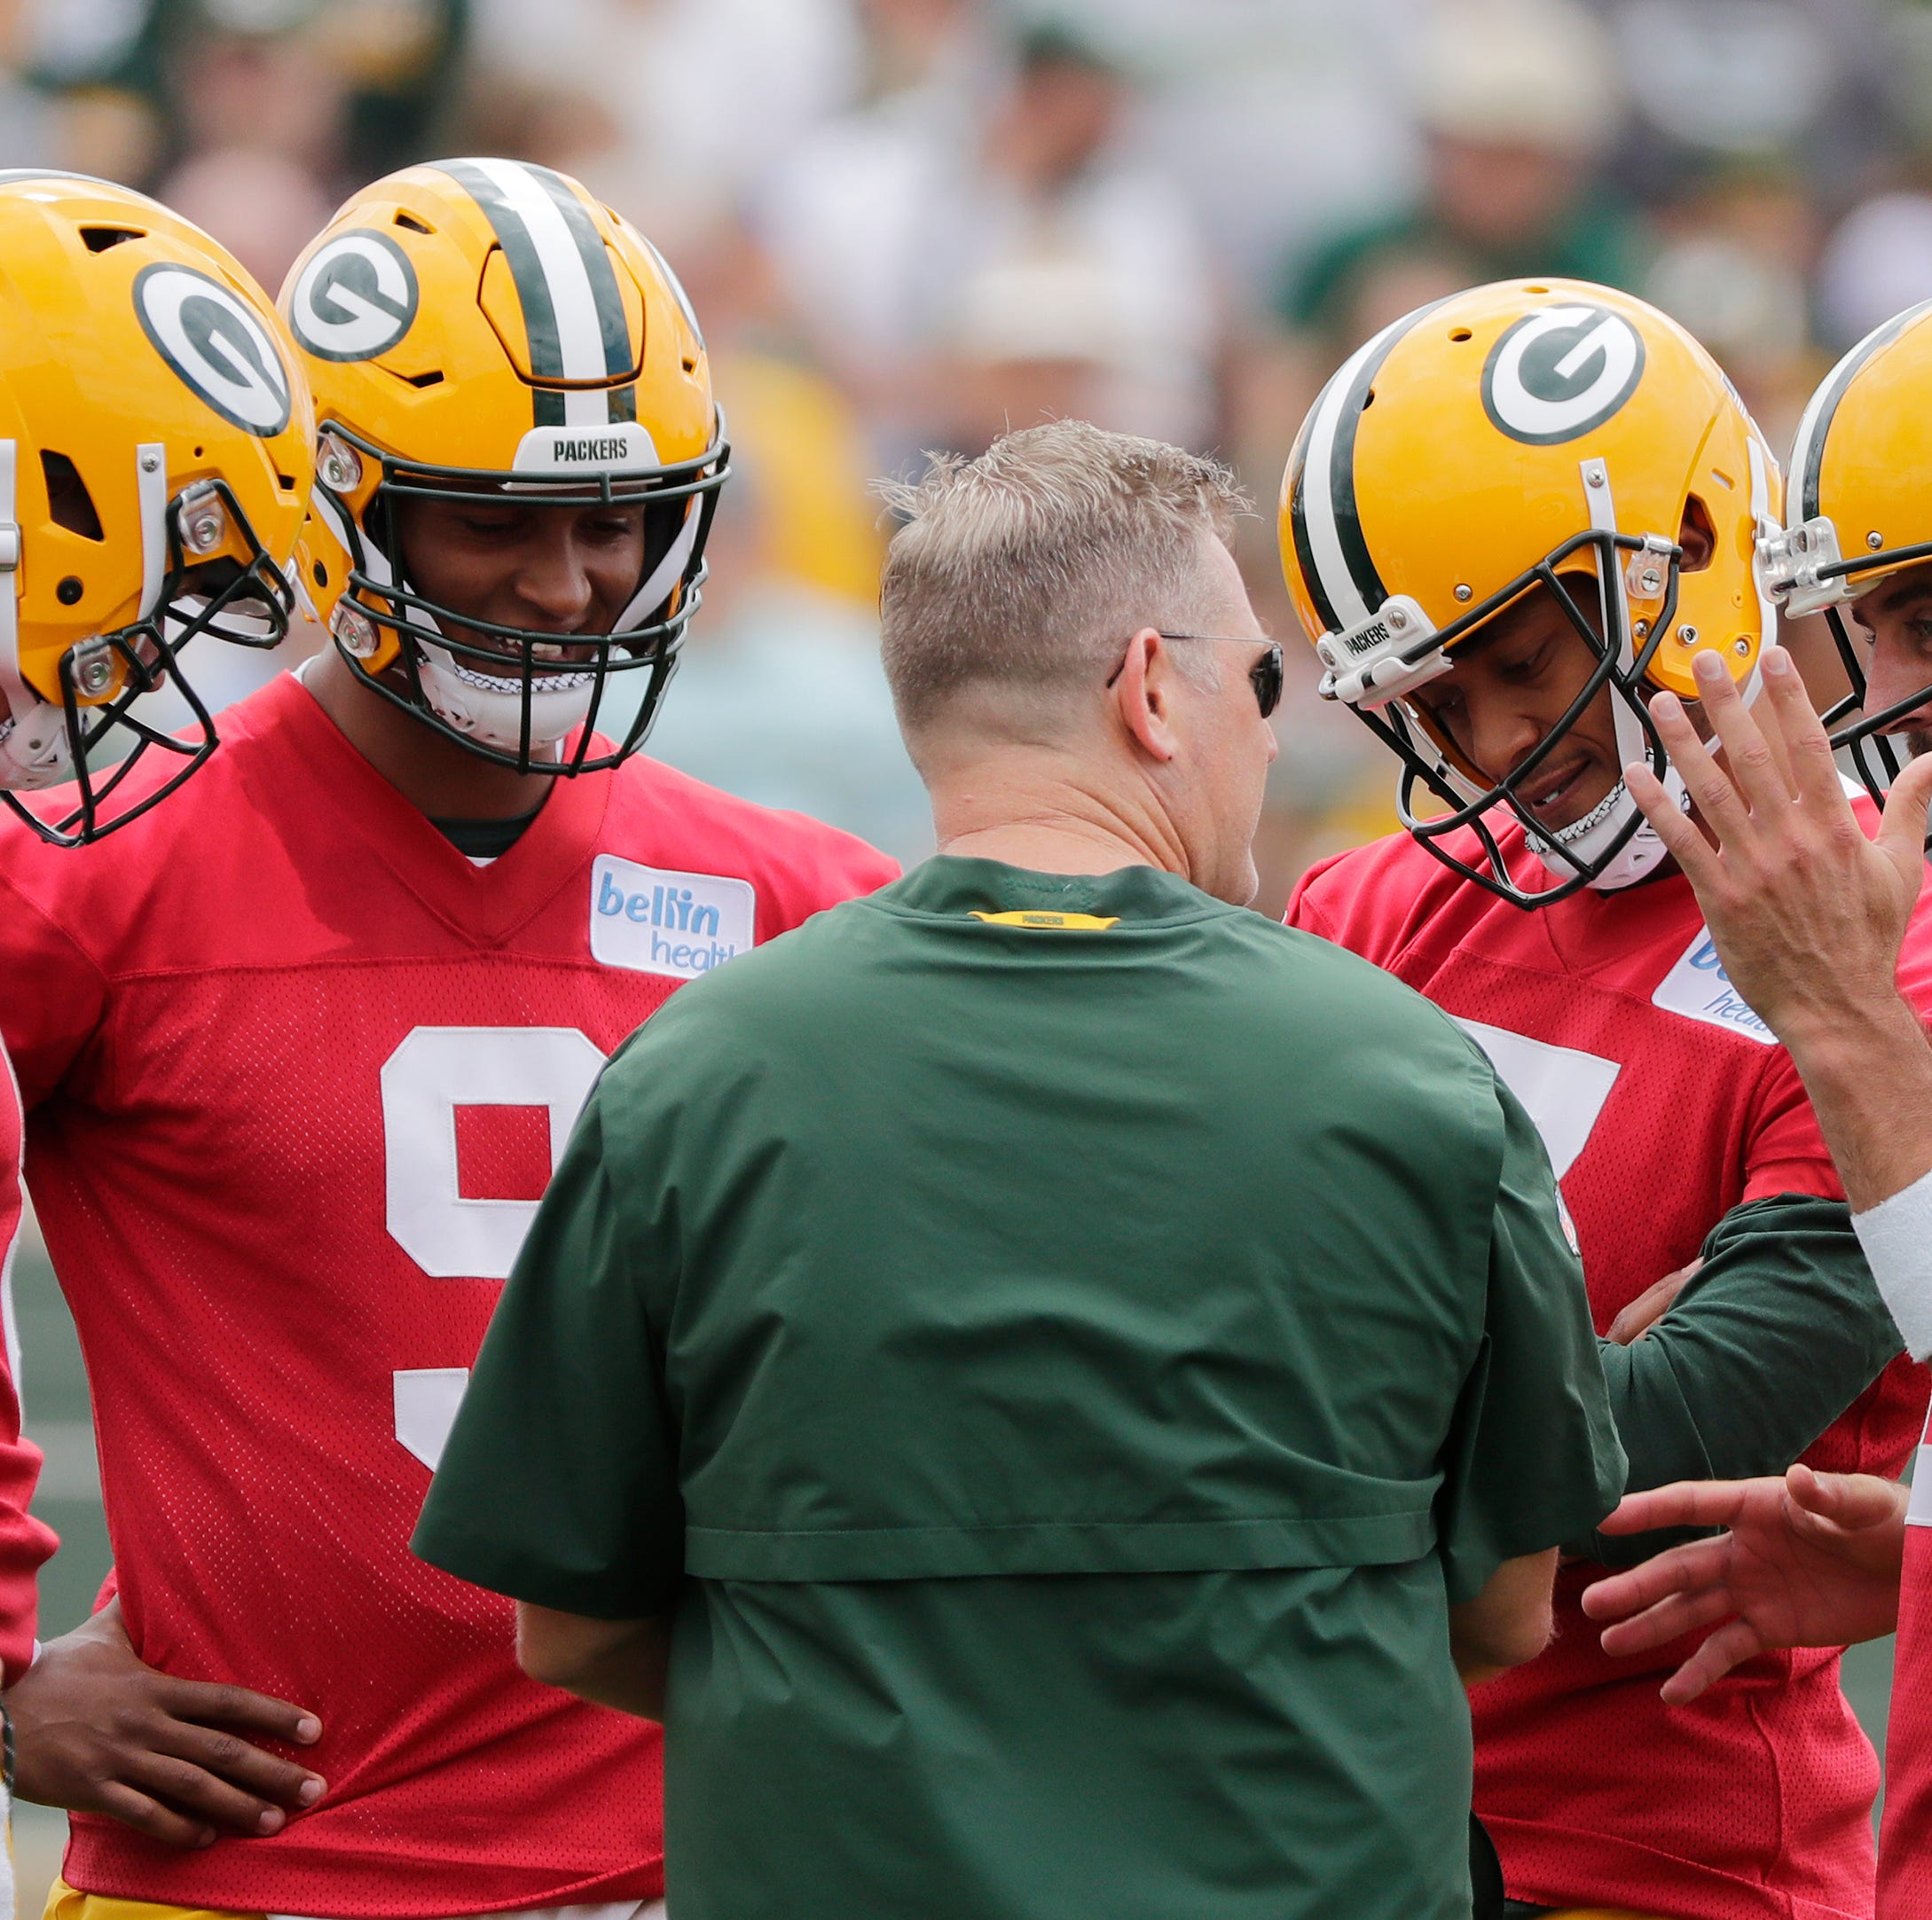 Packers QBs DeShone Kizer, Tim Boyle still ironing out fundamental flaws